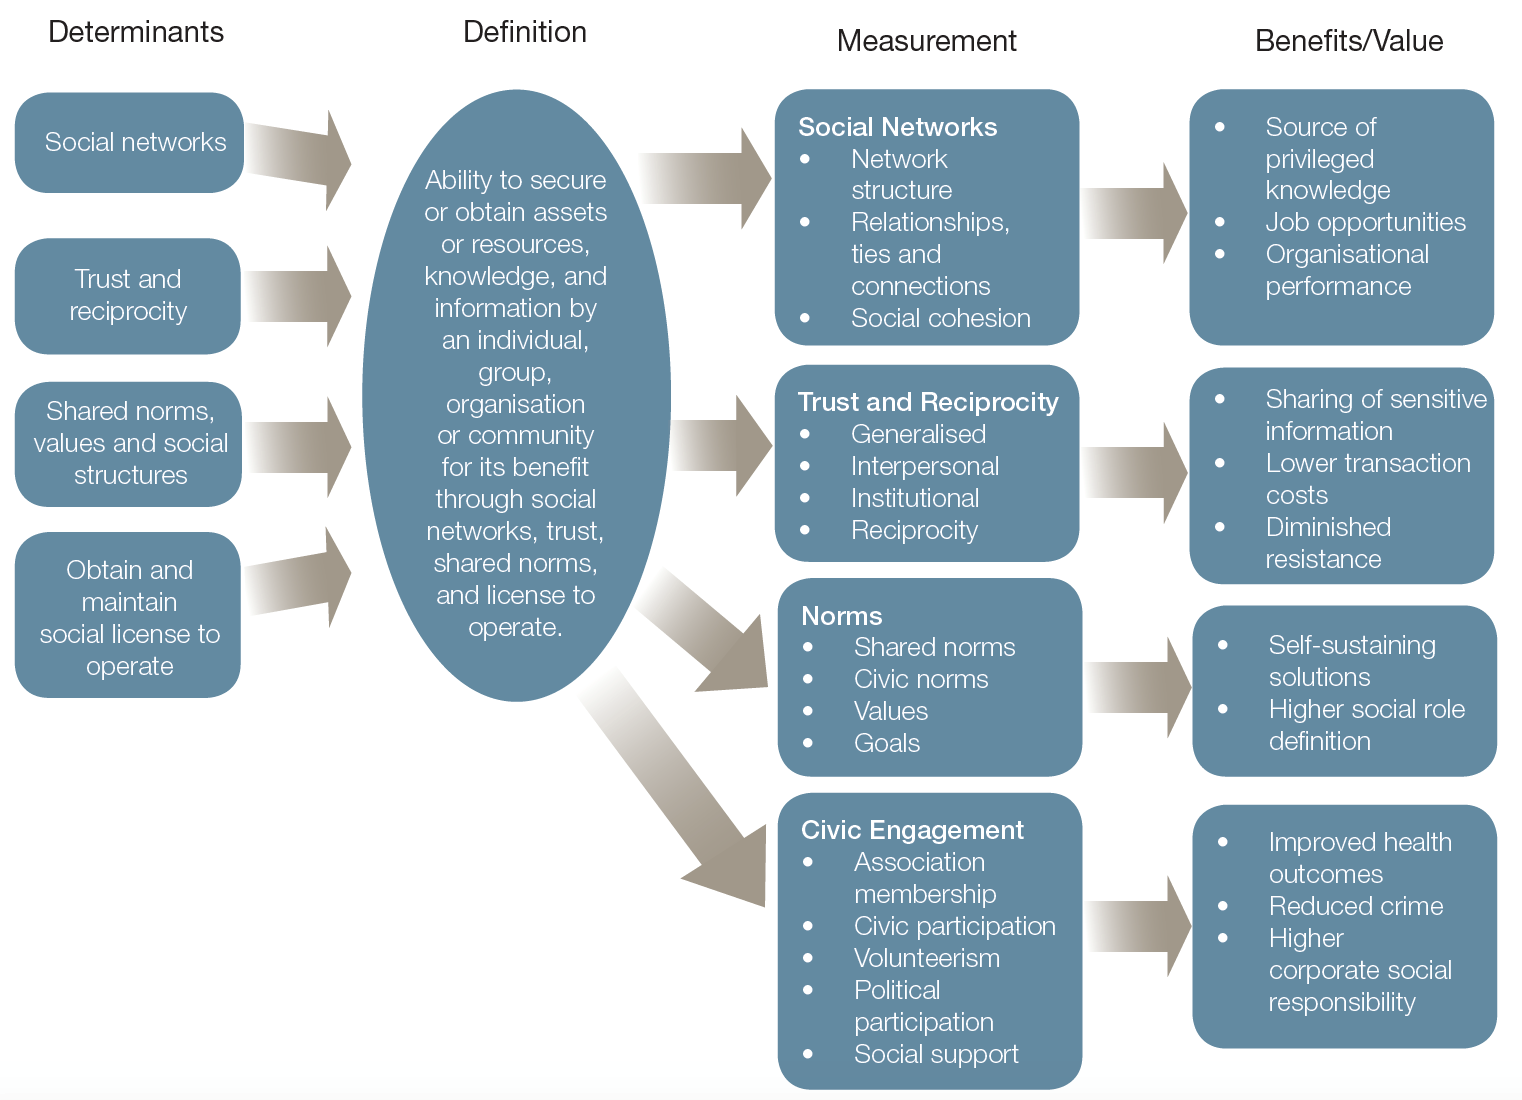 Figure 1: An integrative model of social capital sources, definitions, measures and values [4]